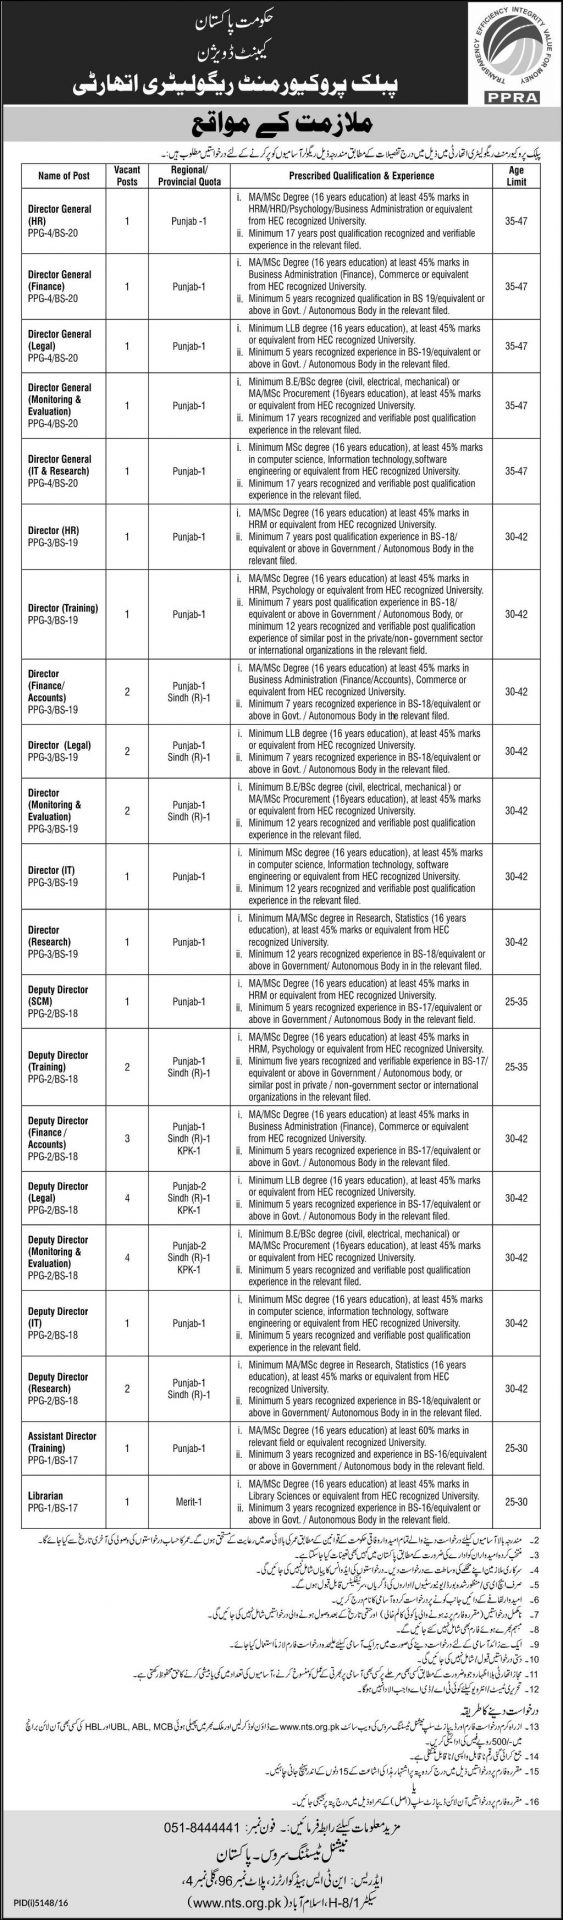 punjab jobs nts application form test date eligibility ppra punjab jobs 2017 nts application form test date eligibility